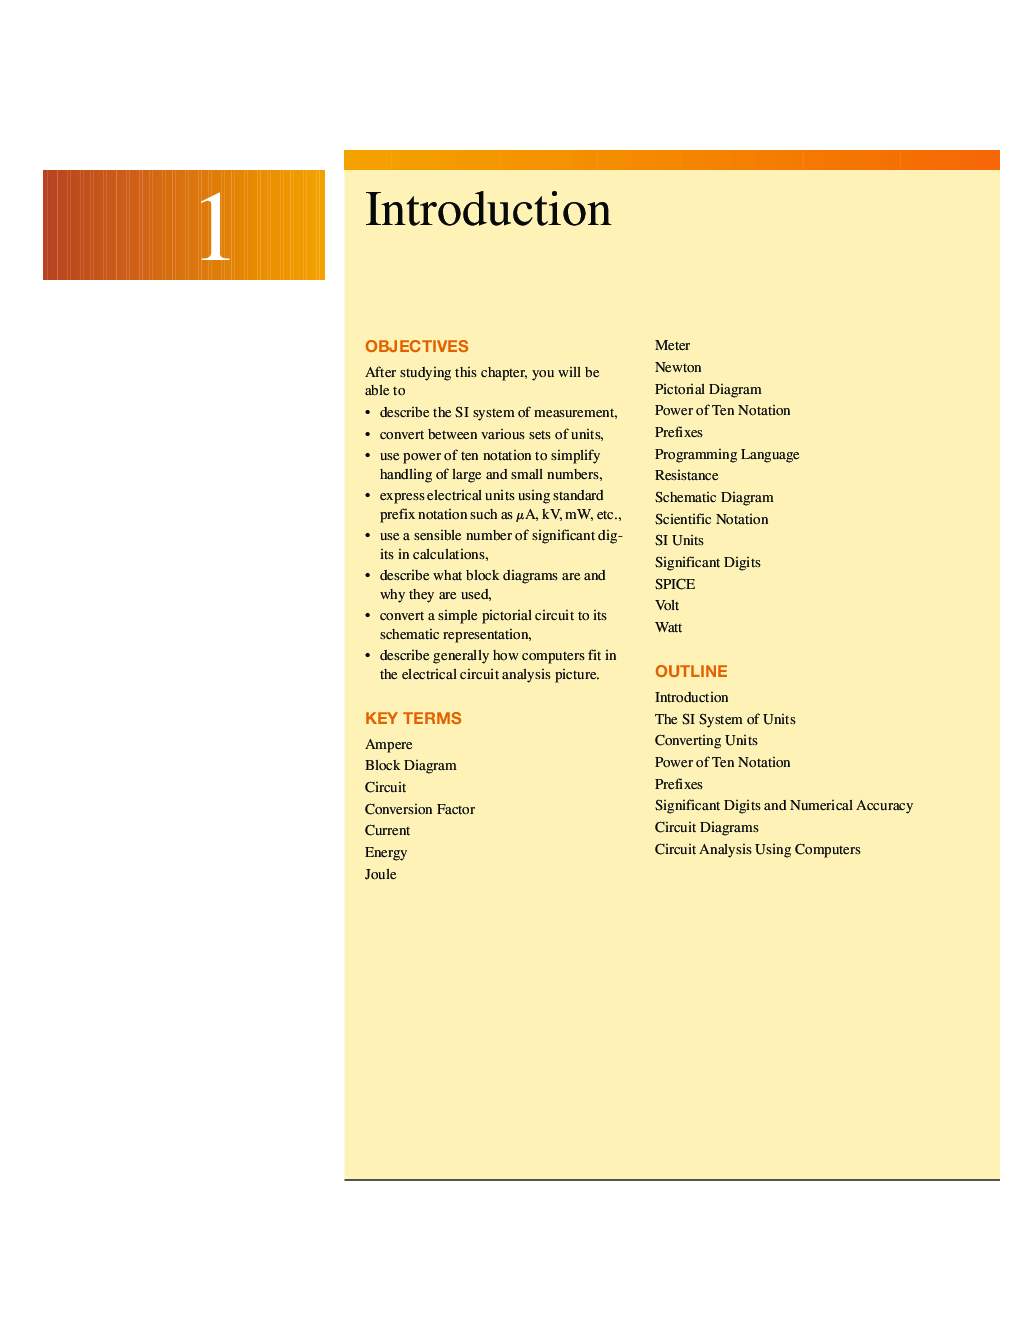 Circuit Analysis Theory and Practice - Page 2